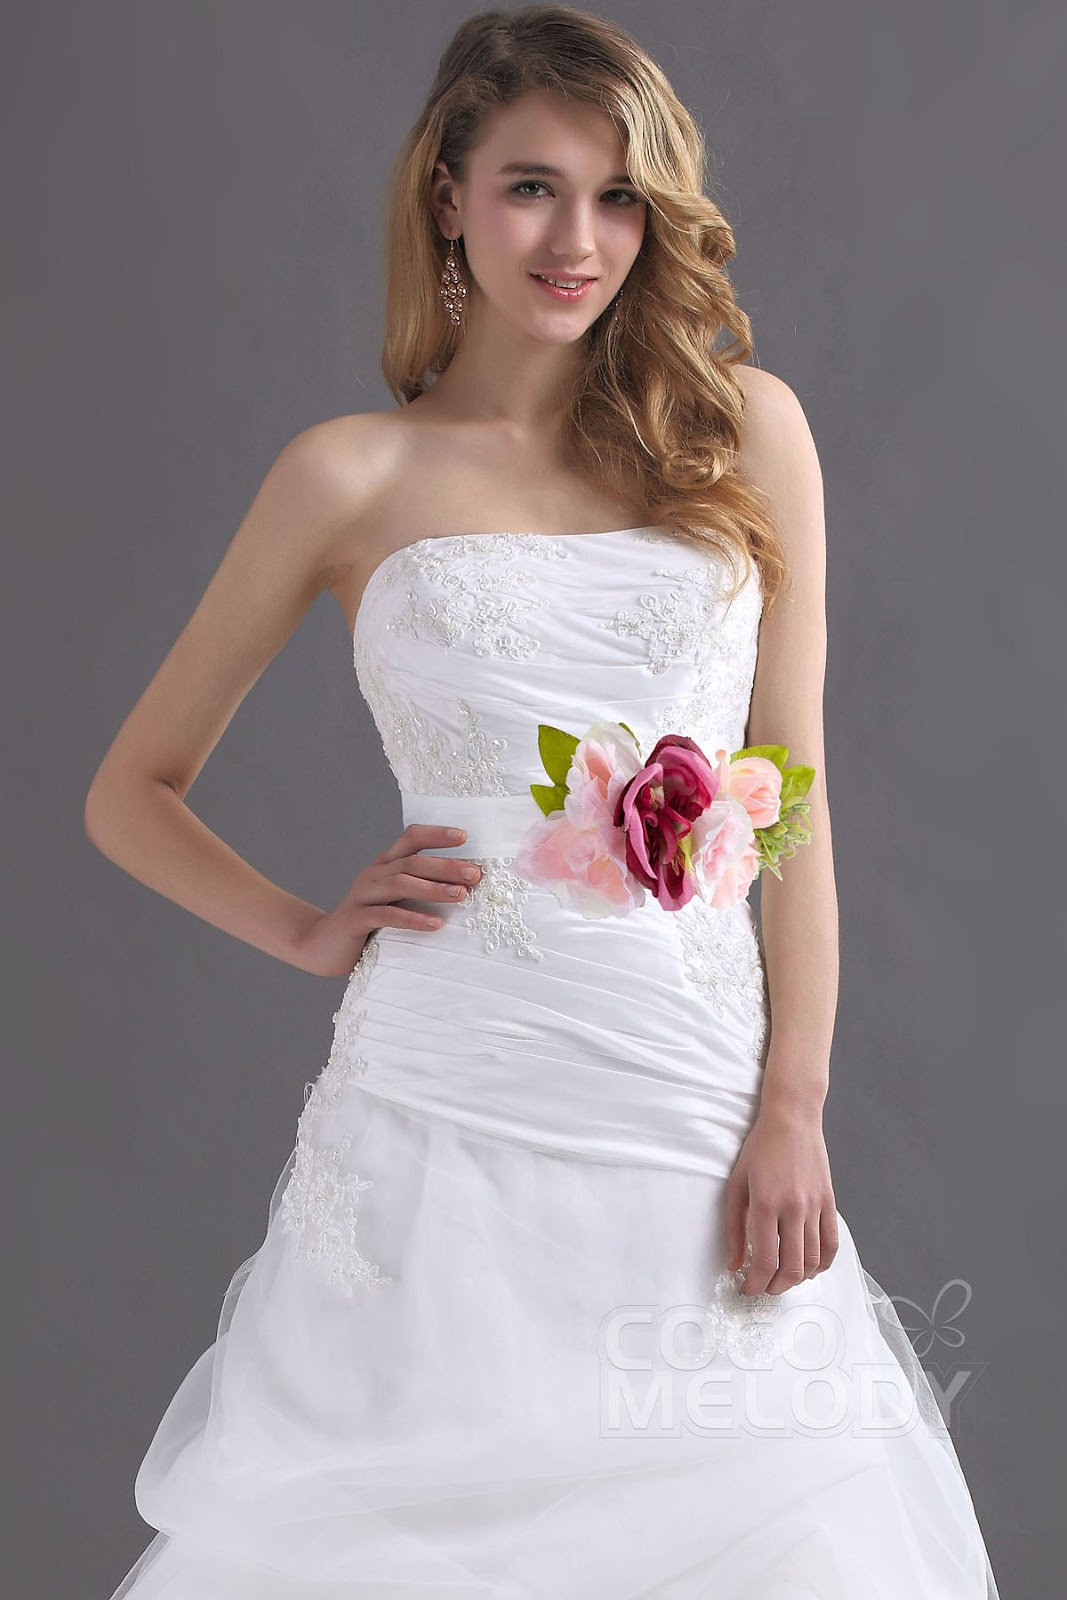 Bridesmaid dresses 2013 the very best wedding dress match from the peaceful romantic marriage ceremony can be the wish for lots of girls and the way to choose the designer dresses as well as the marriage makeup ombrellifo Images